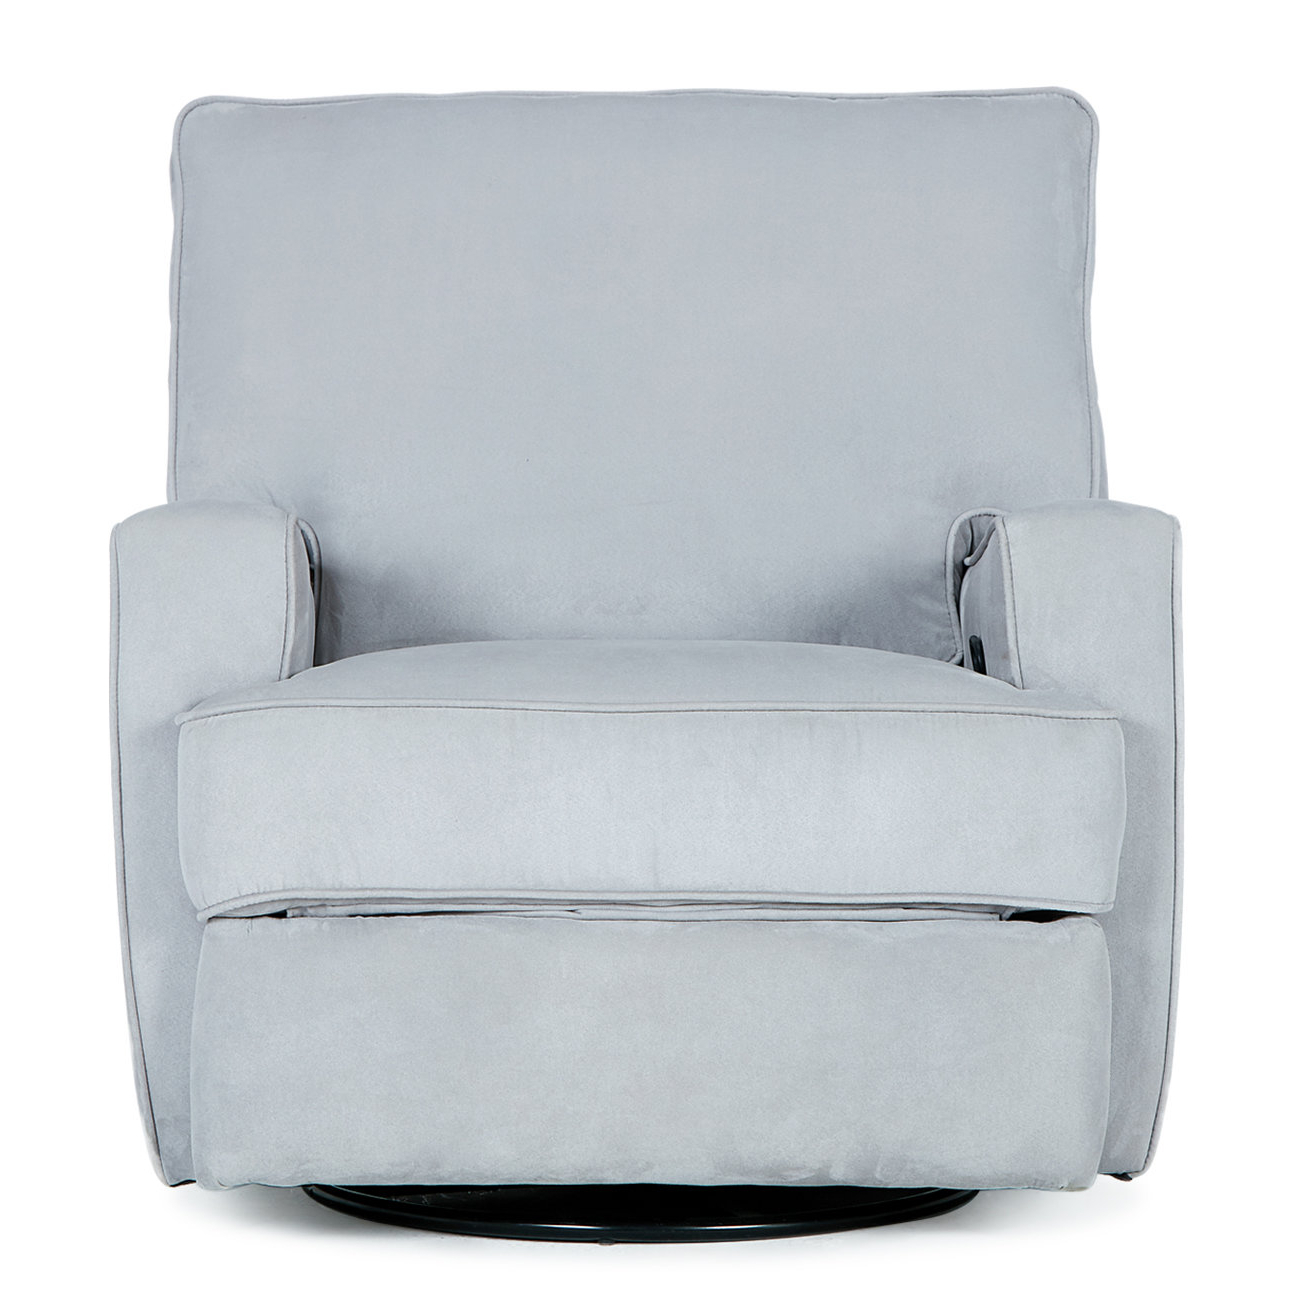 Darby Home Co Finck Manual Swivel Recliner (Gallery 13 of 20)